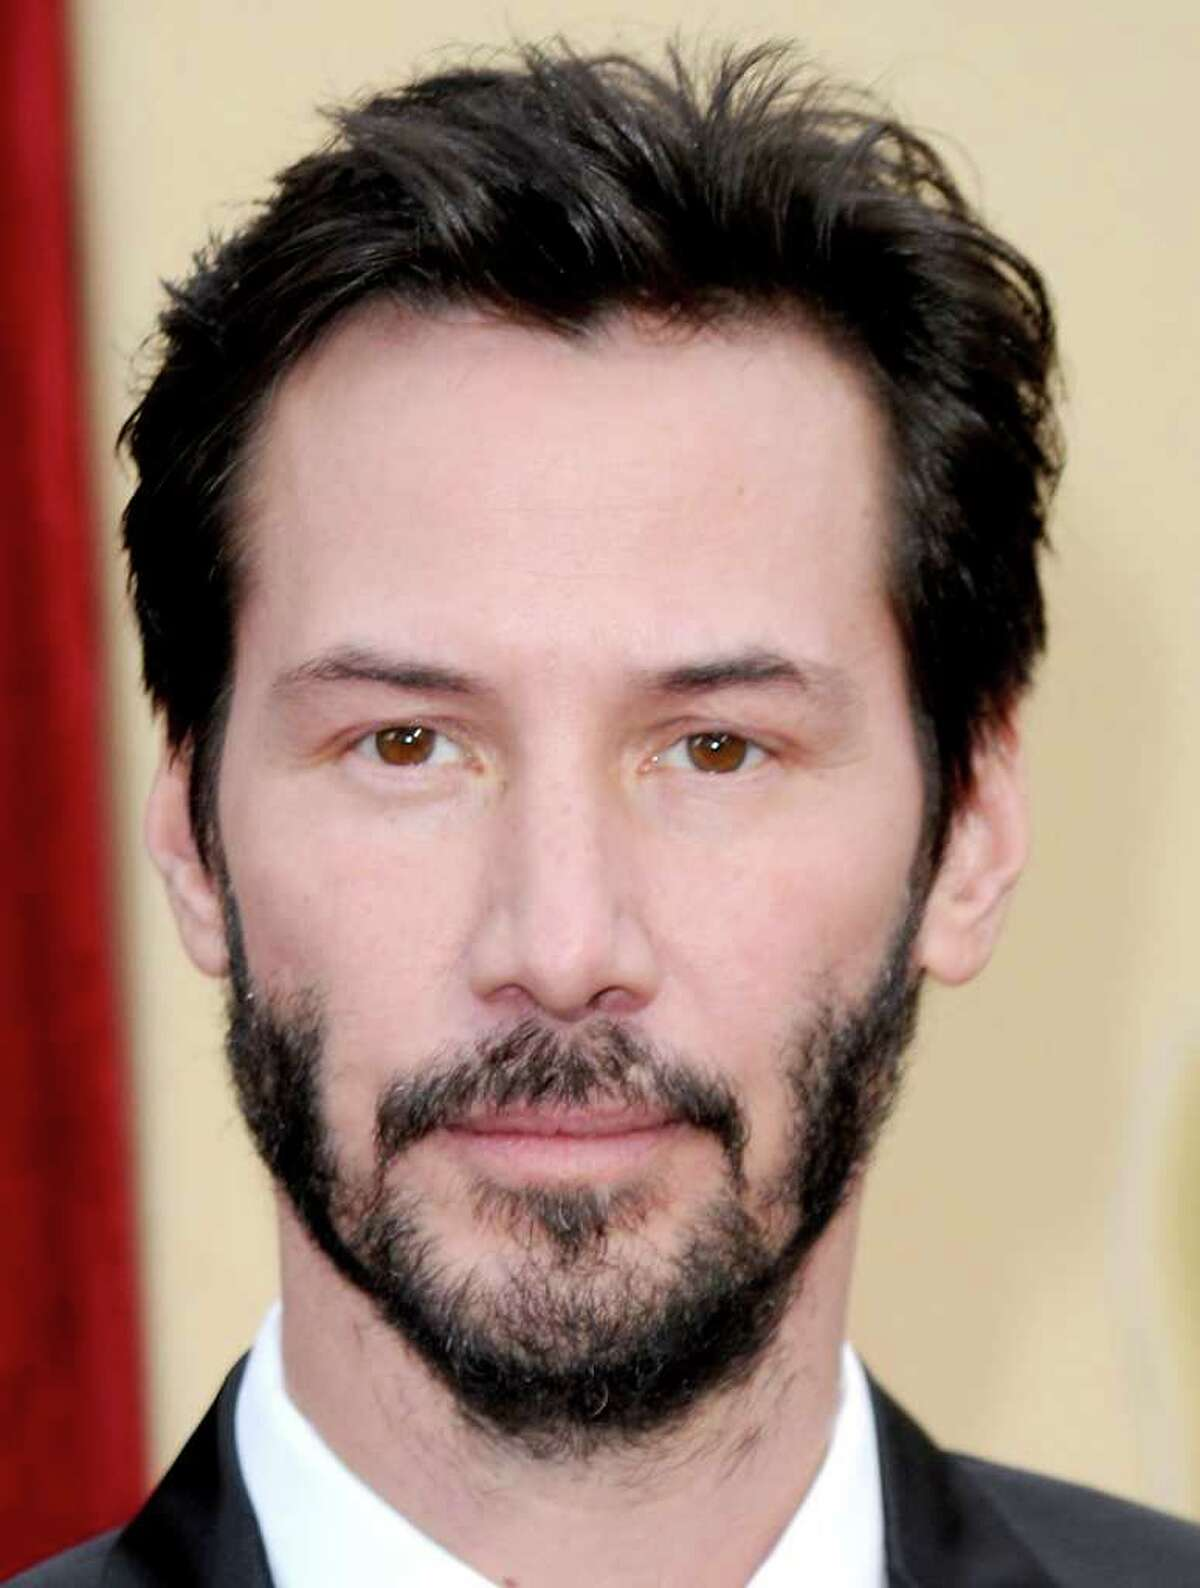 The seattlepi.com staff, having heard Rotten Tomatoes data on the worst-ever actor and actress, put together a larger list of 40 -- not THE 40, but 40 -- worst actors and actresses. To start off, here's an obvious one: Keanu Reeves.